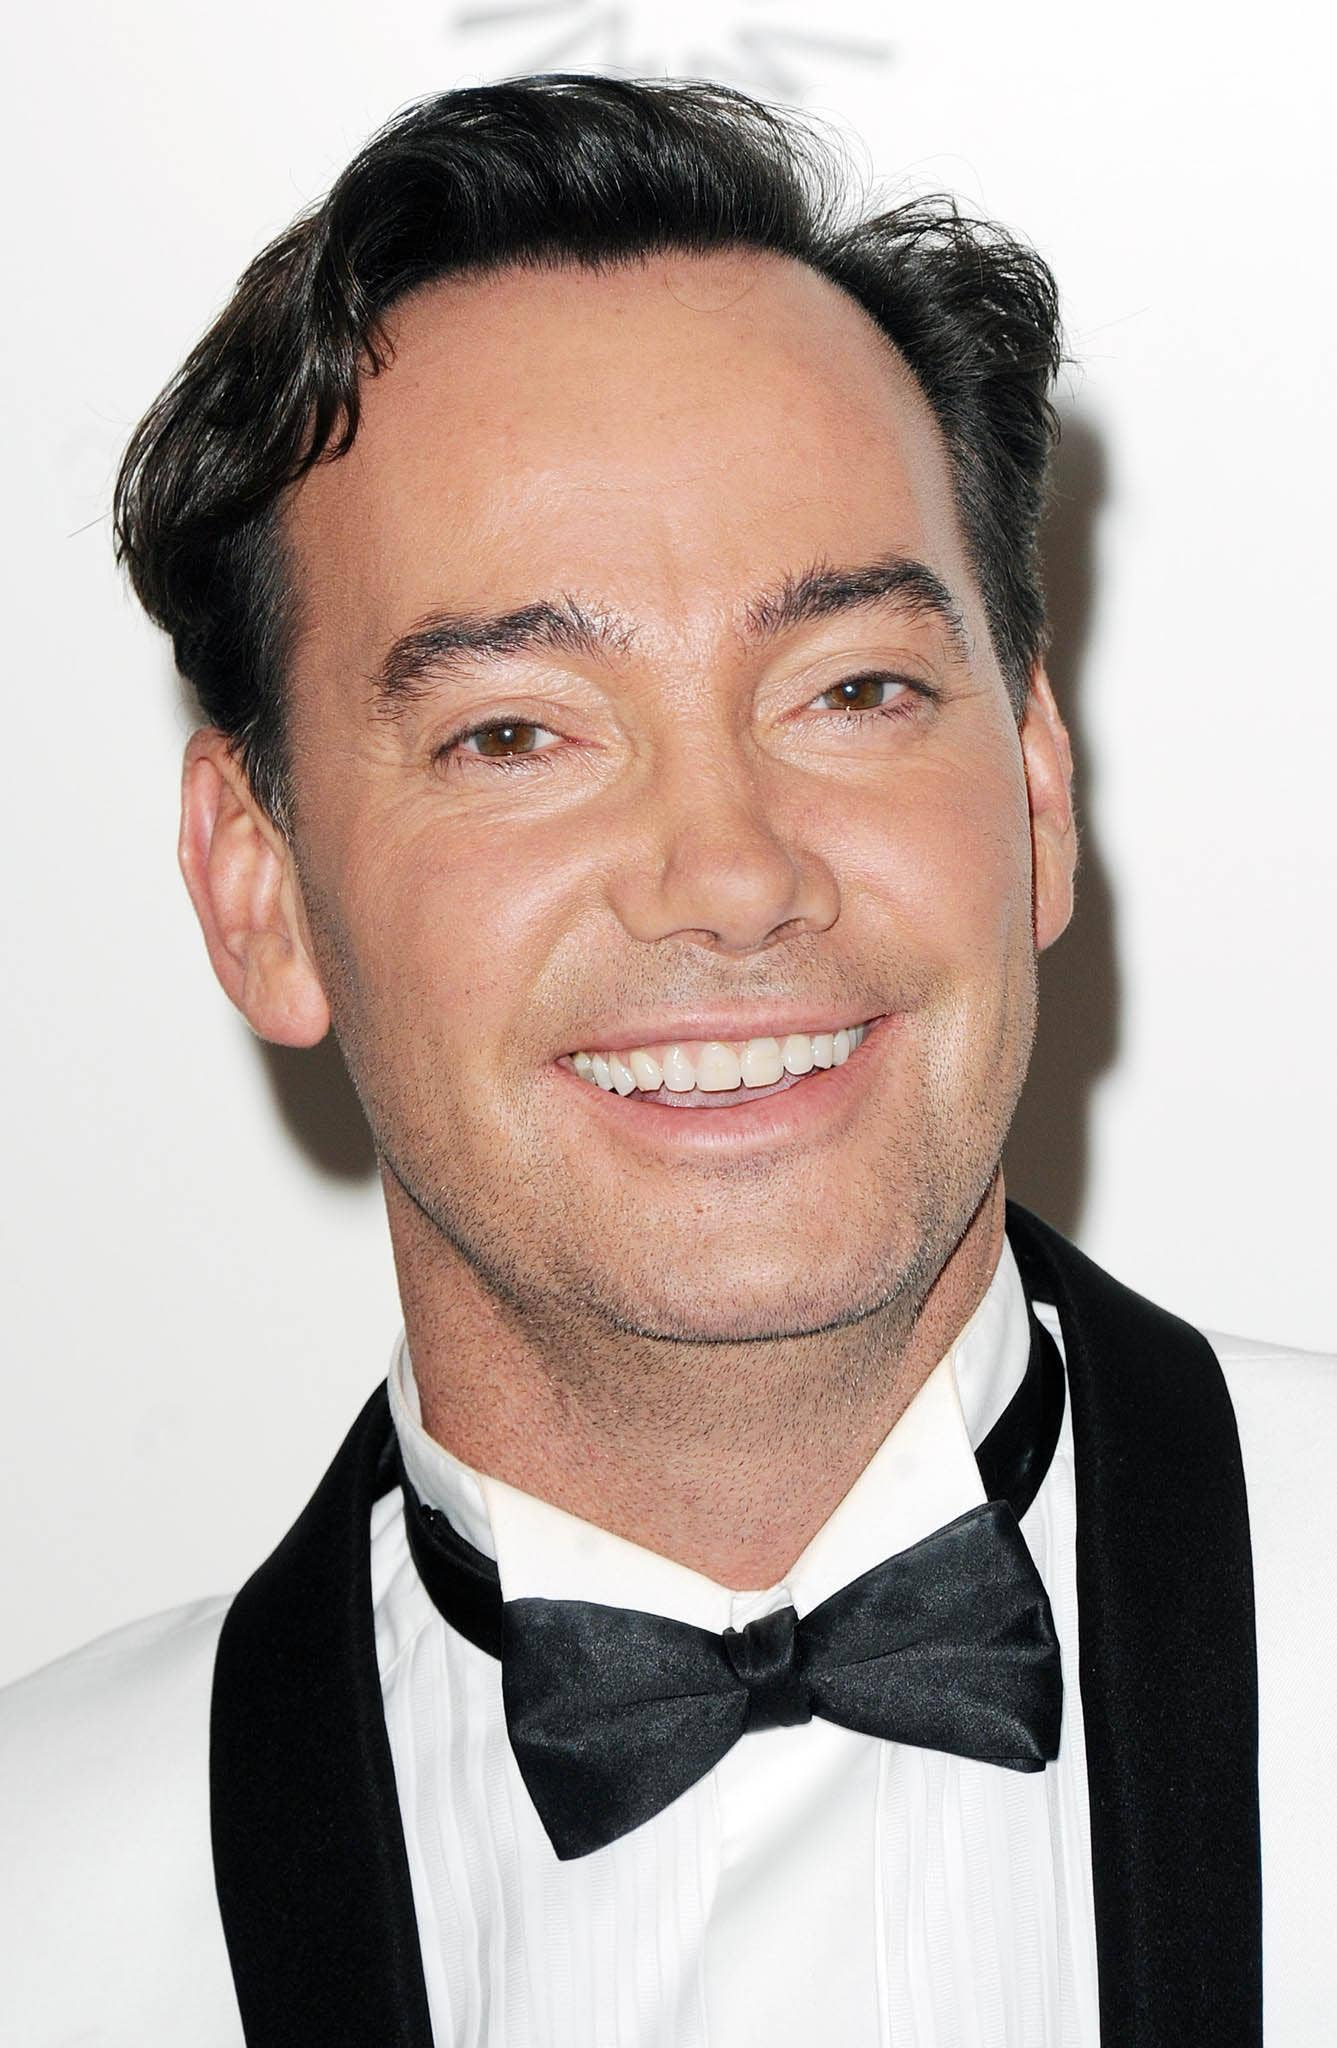 Criag Revel Horwood has announced he will undergo hip replacement surgery